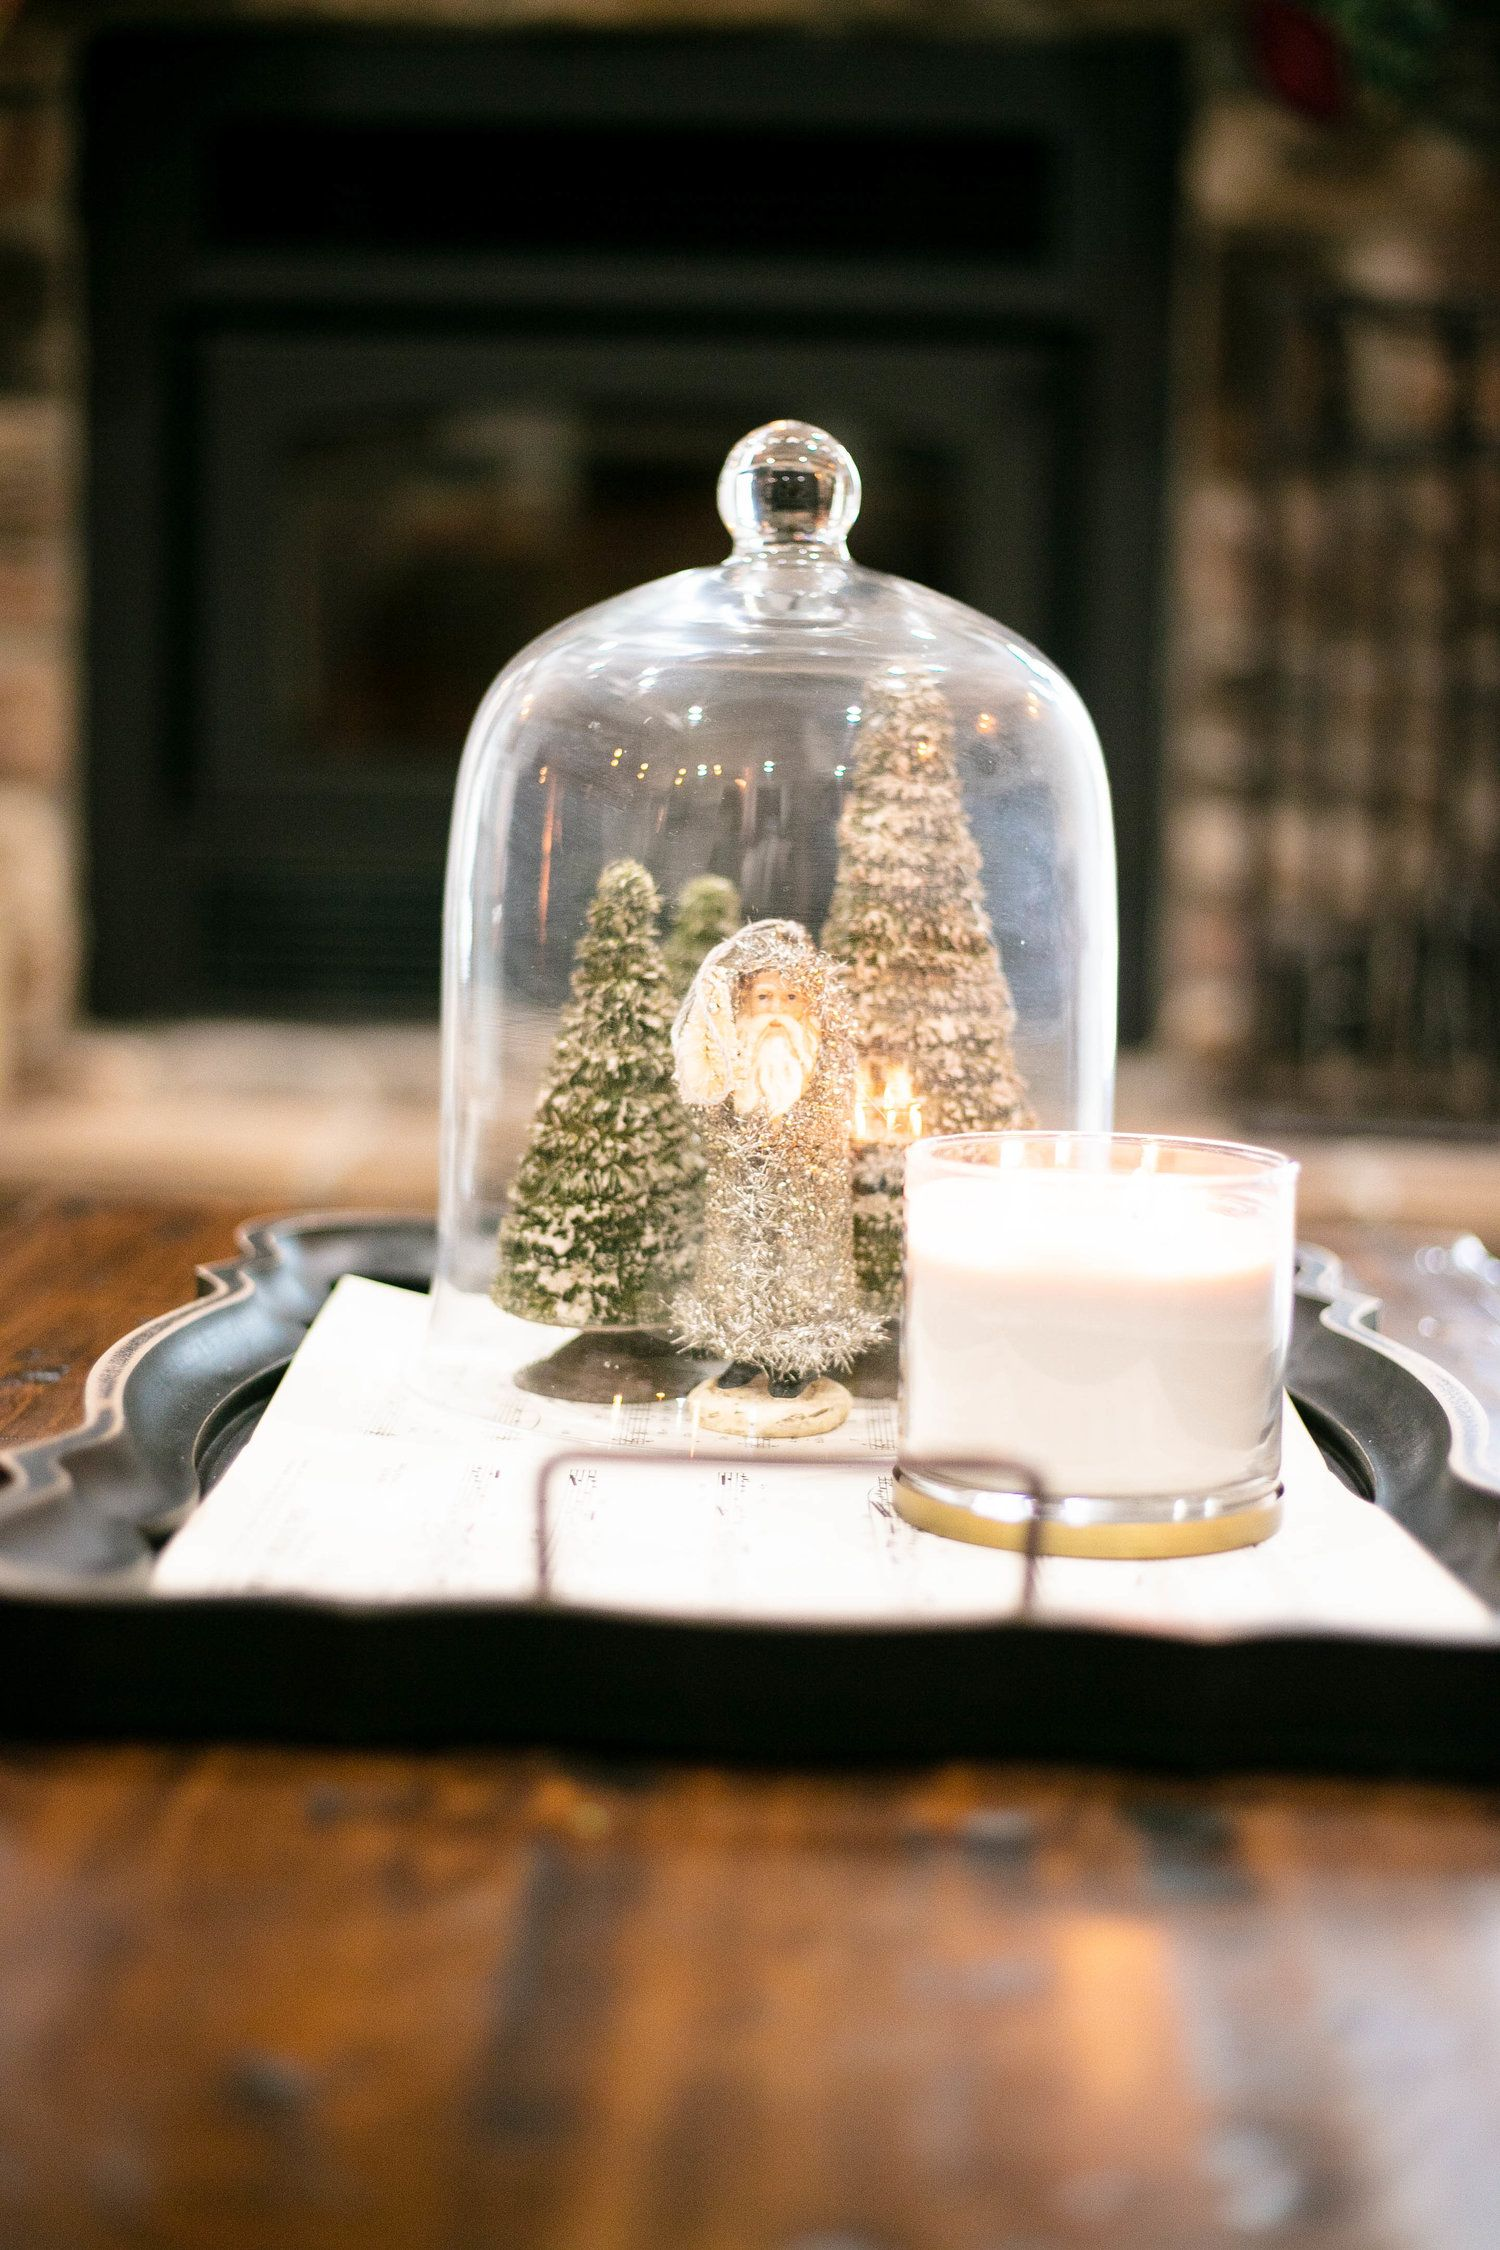 Coffee Table Center Piece With Sheet Music And A Globe With Santa And Tree Figurines Next To A Ca Christmas Coffee Table Decor Christmas Tours Christmas Coffee